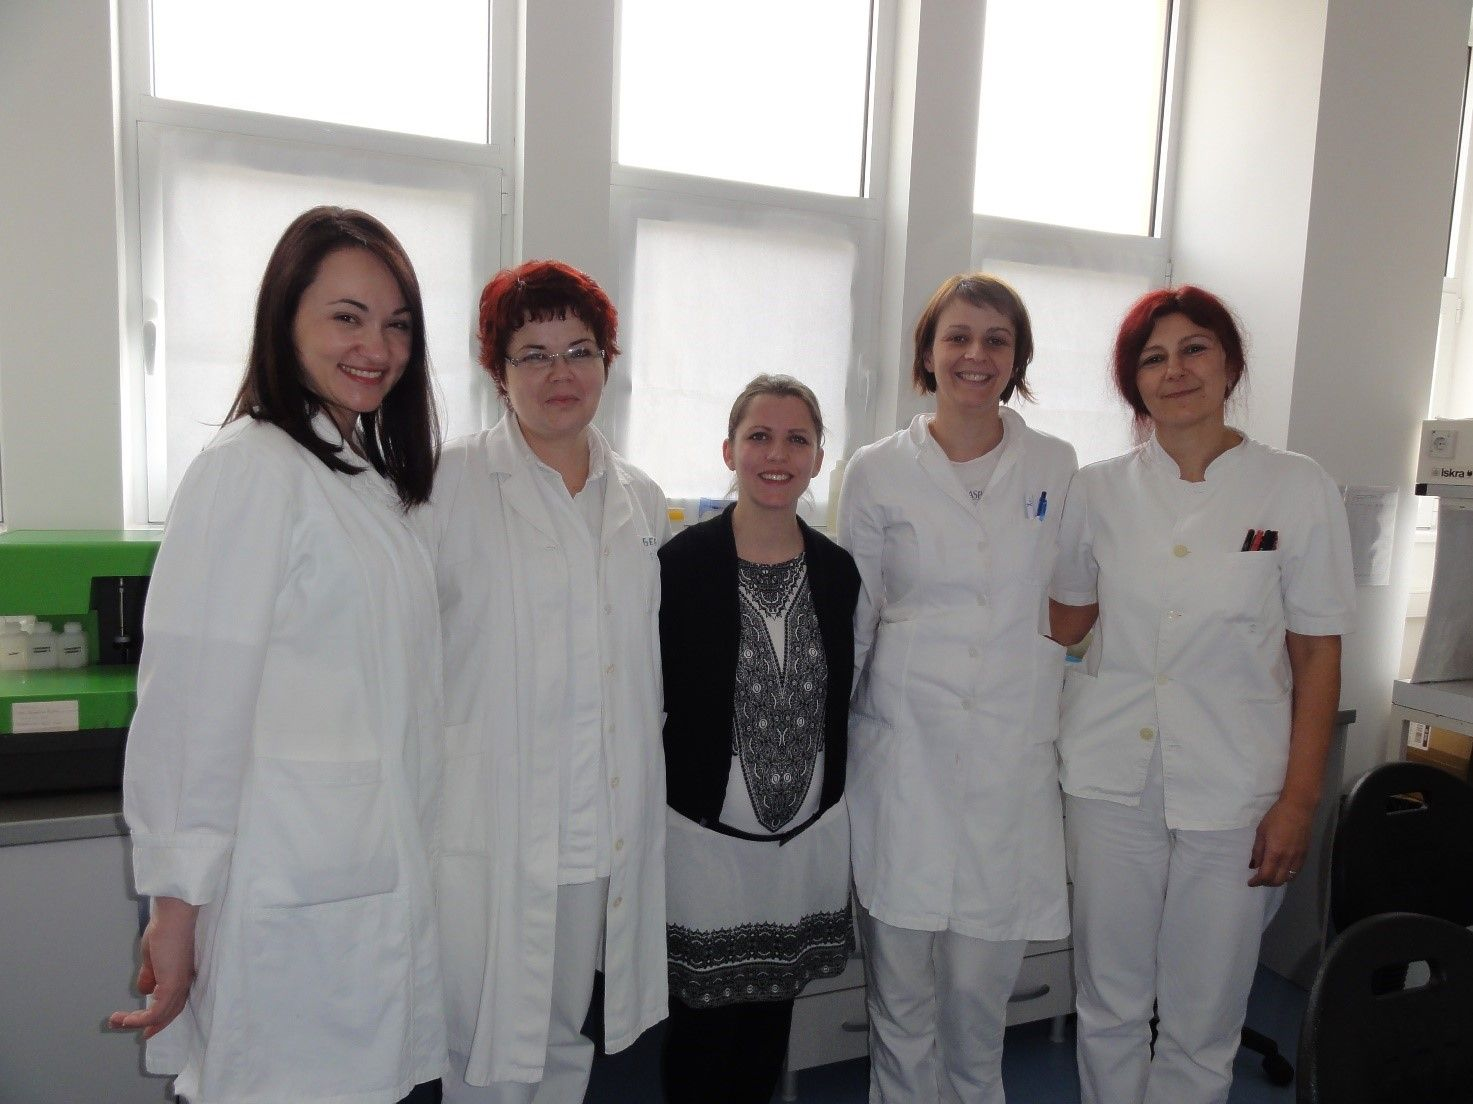 From left to right: Dr Maja Bancevic (Head of the National Reference Laboratory for Measles and Rubella in Serbia), Jelena Mitrovic (technician at Torlak Institute of Virology, Vaccines and Sera), Emilie Charpentier (LIH techician), Dr Jelena Protic (Head of laboratory at Torlak Institute of Virology, Vaccines and Sera) and Ana Novakovic (technician at Torlak Institute of Virology, Vaccines and Sera)..